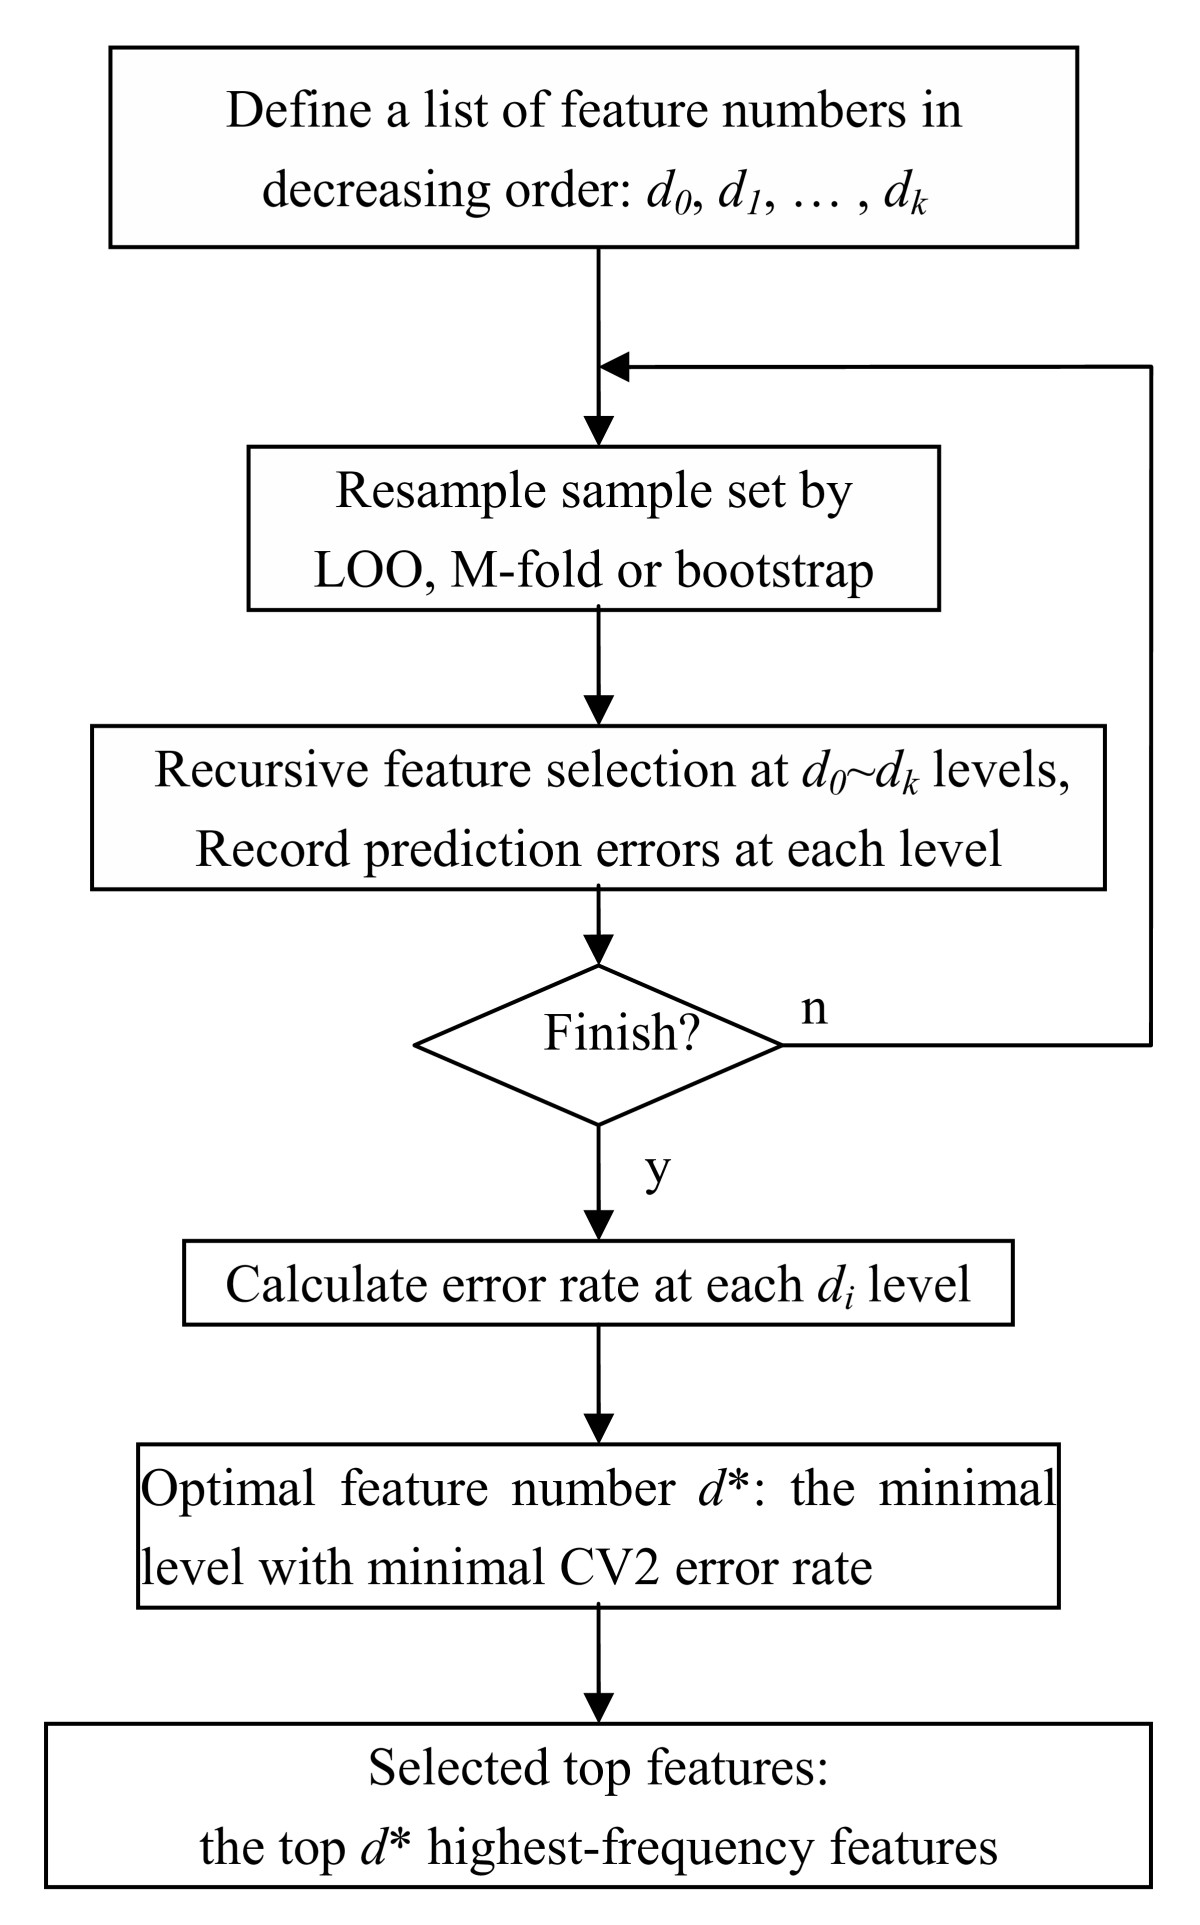 http://static-content.springer.com/image/art%3A10.1186%2F1471-2105-7-197/MediaObjects/12859_2006_Article_936_Fig1_HTML.jpg